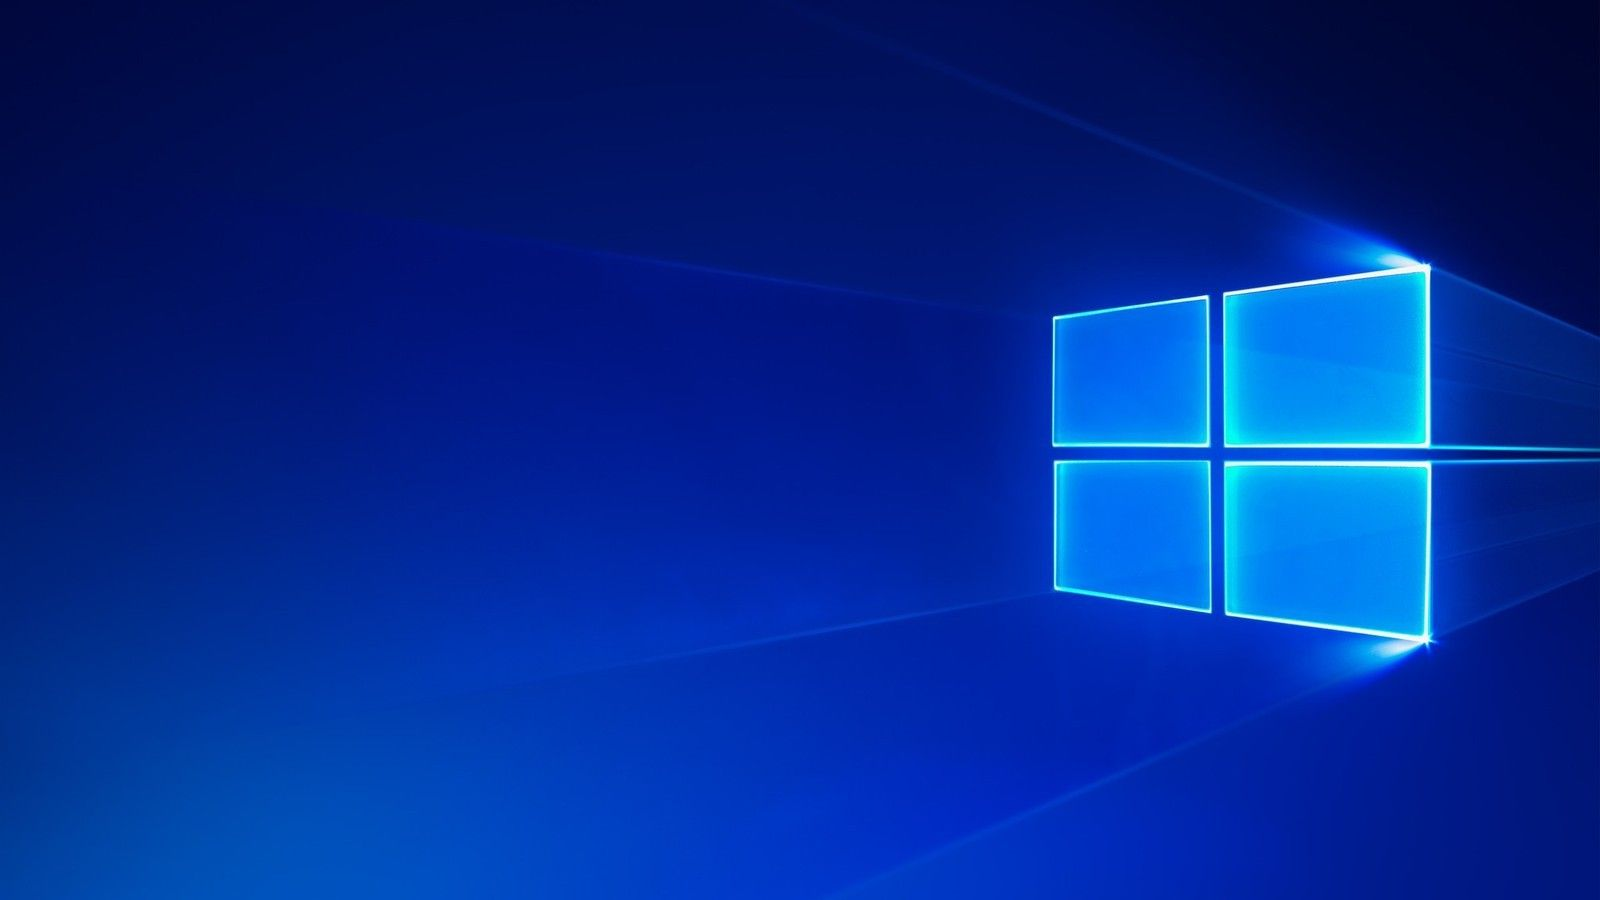 Read This Tutorial And Fix Windows Update Error 0x80070bc2 In Windows 10 All The Given Solutions Are Completely Windows Wallpaper Microsoft Windows Windows 10